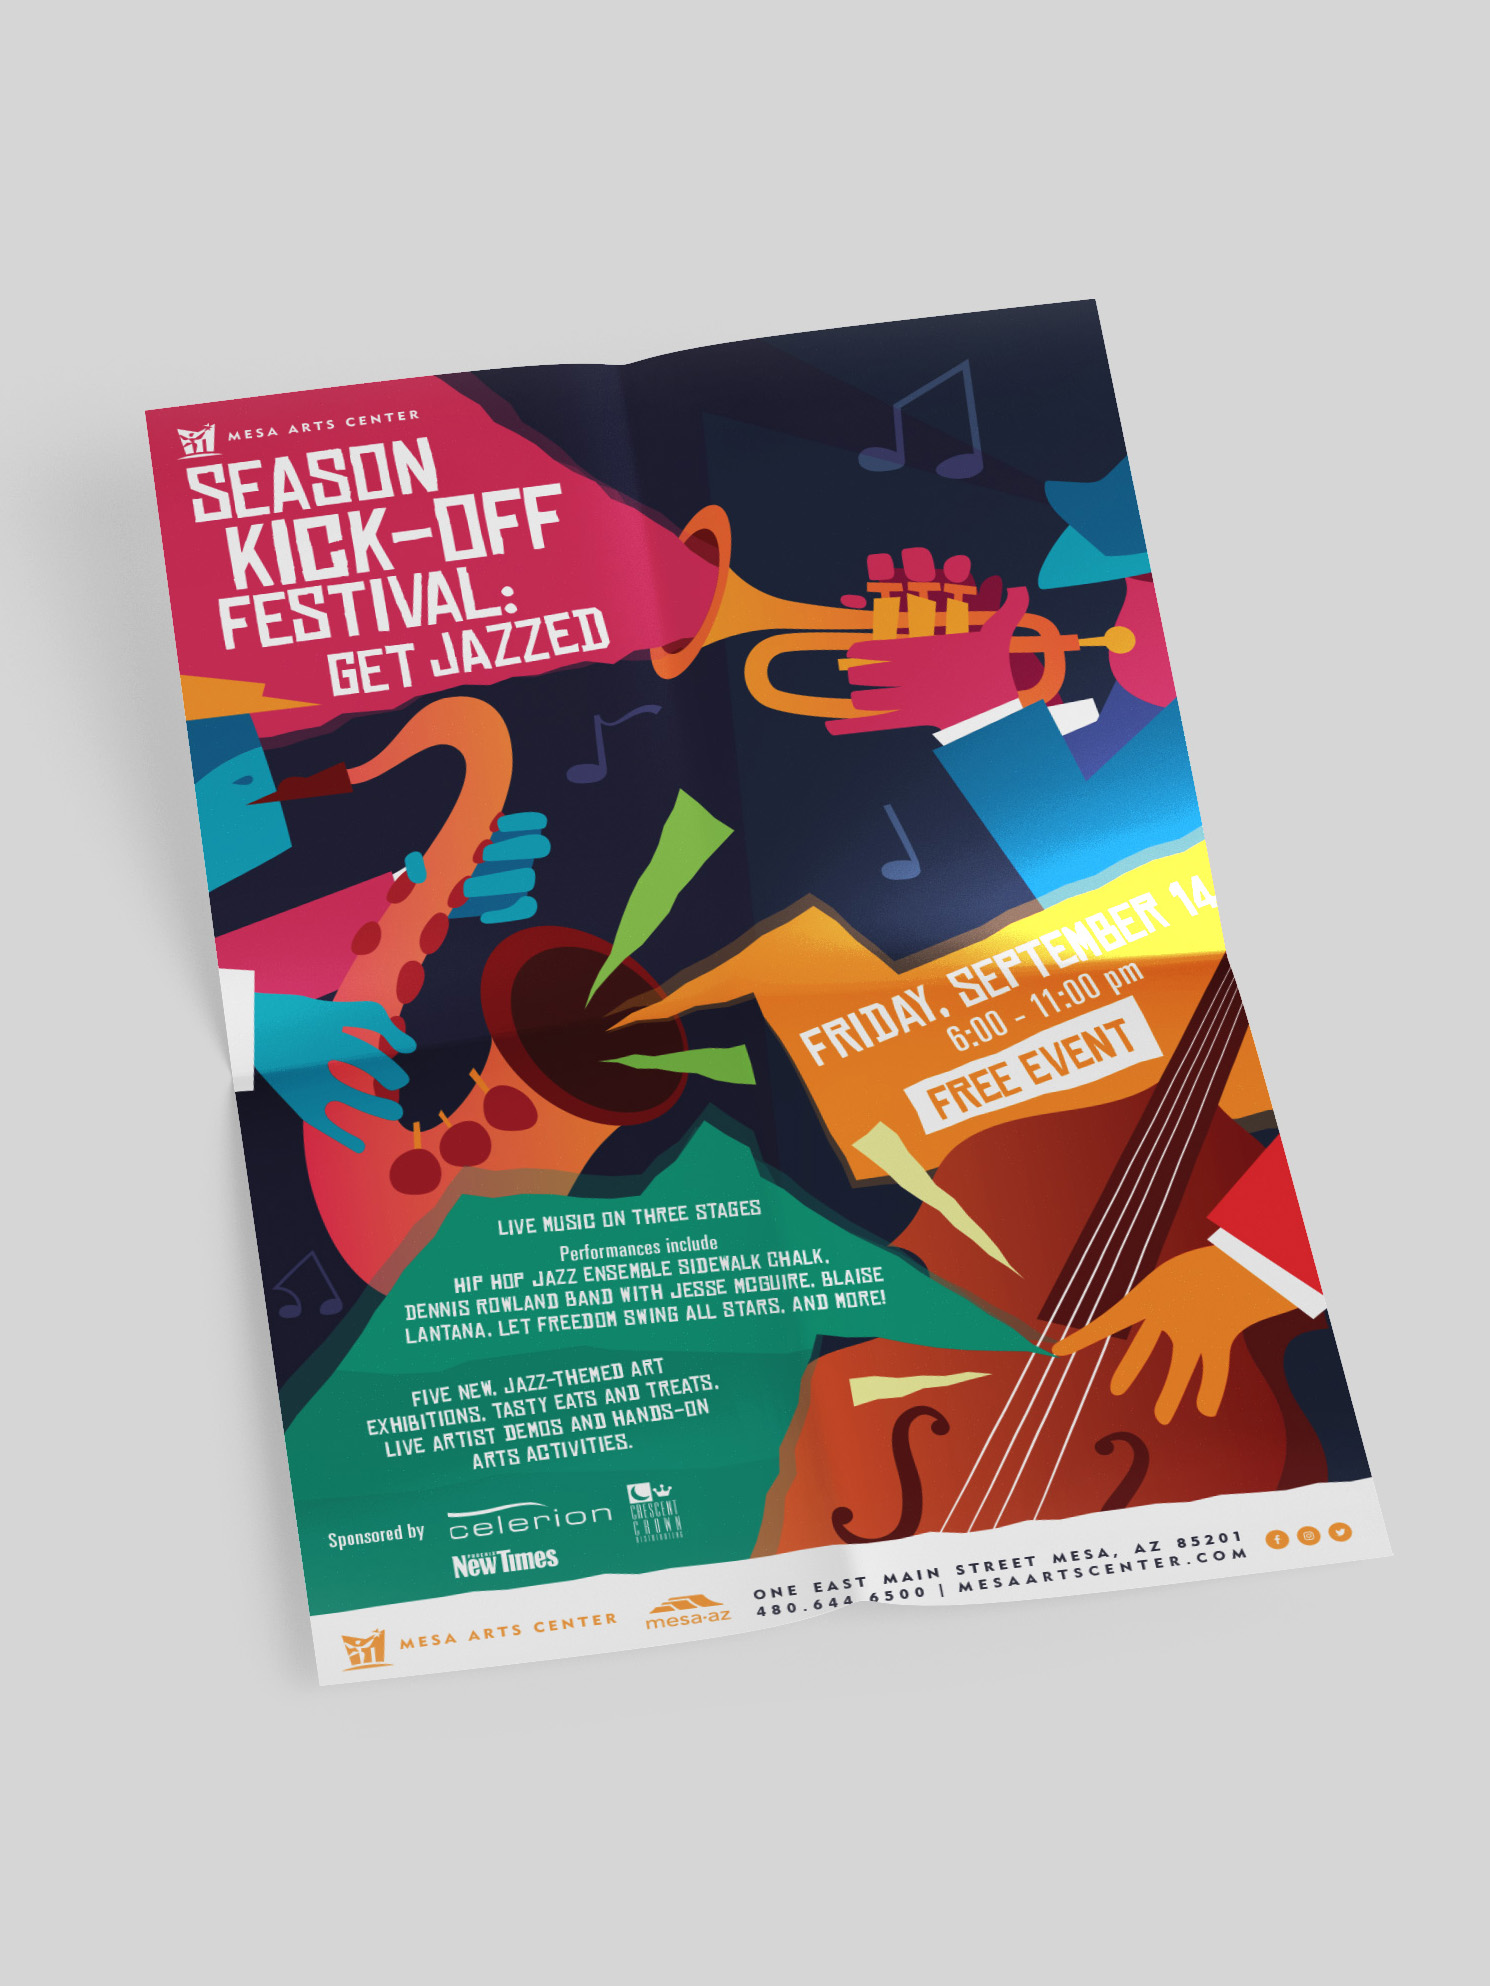 season kick-off festival flyer